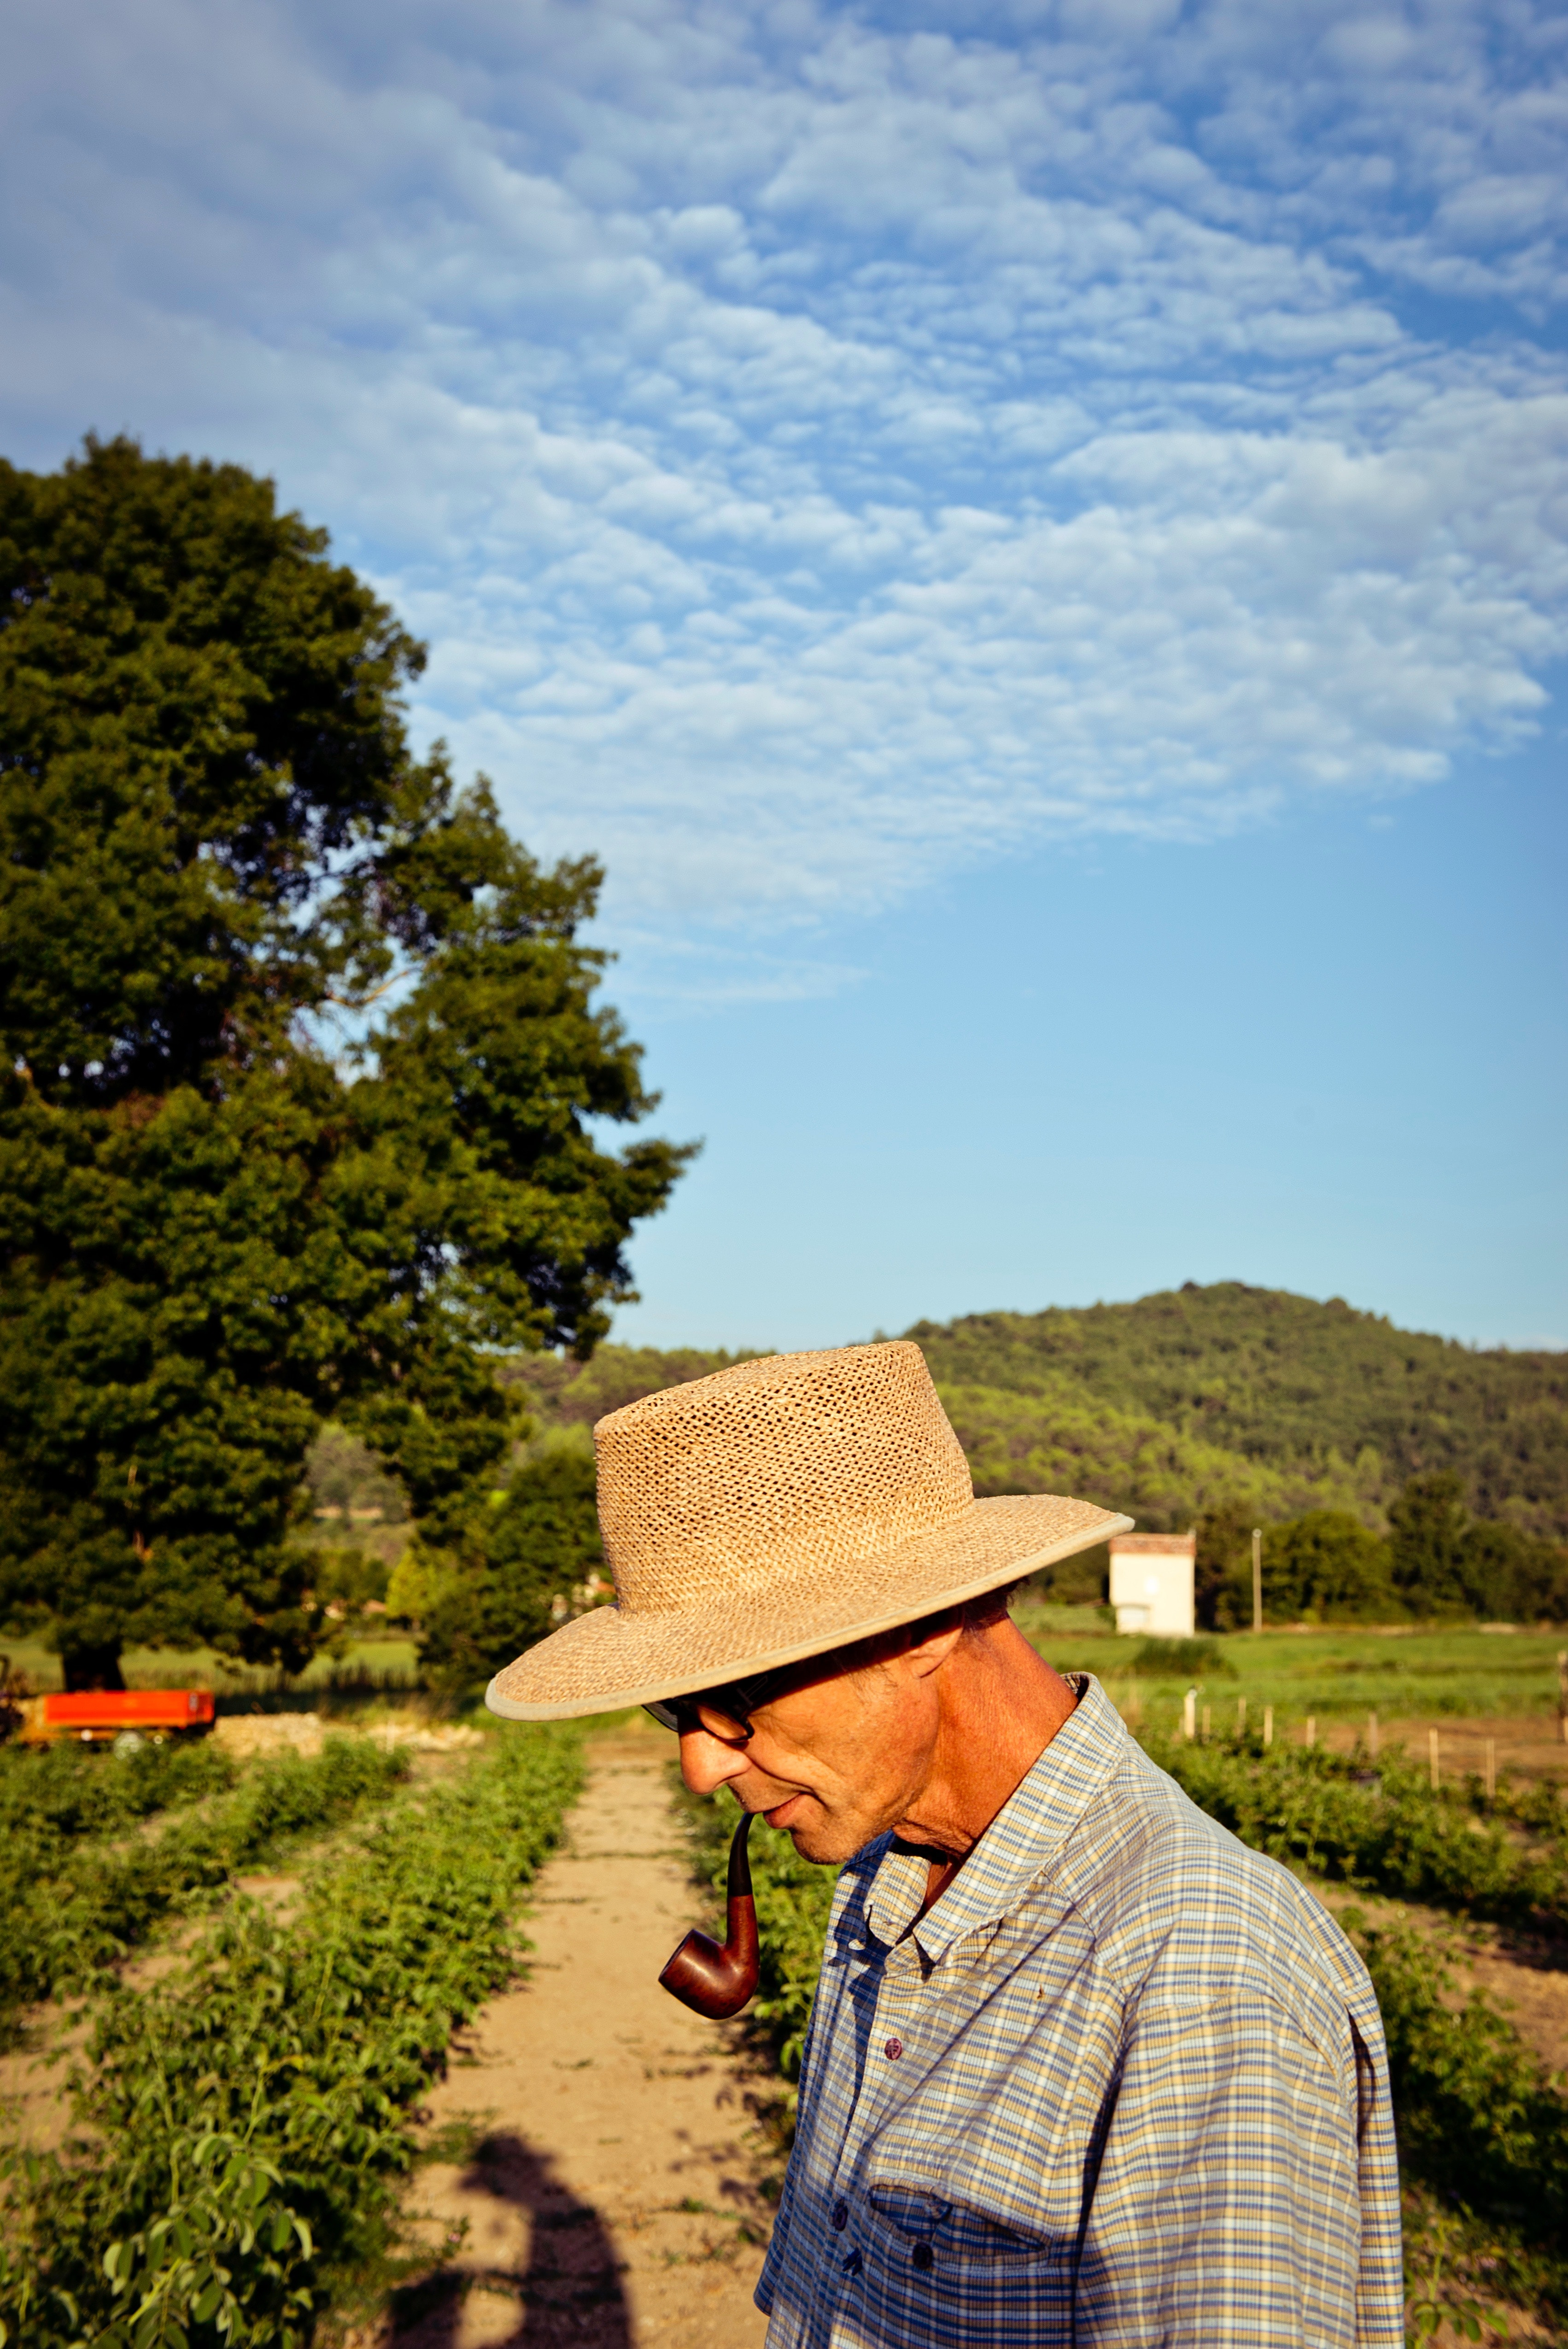 The future of jasmine in Grasse rests with farmers such as Rémy Foltête, who choose to cultivate the land rather than sell it off.